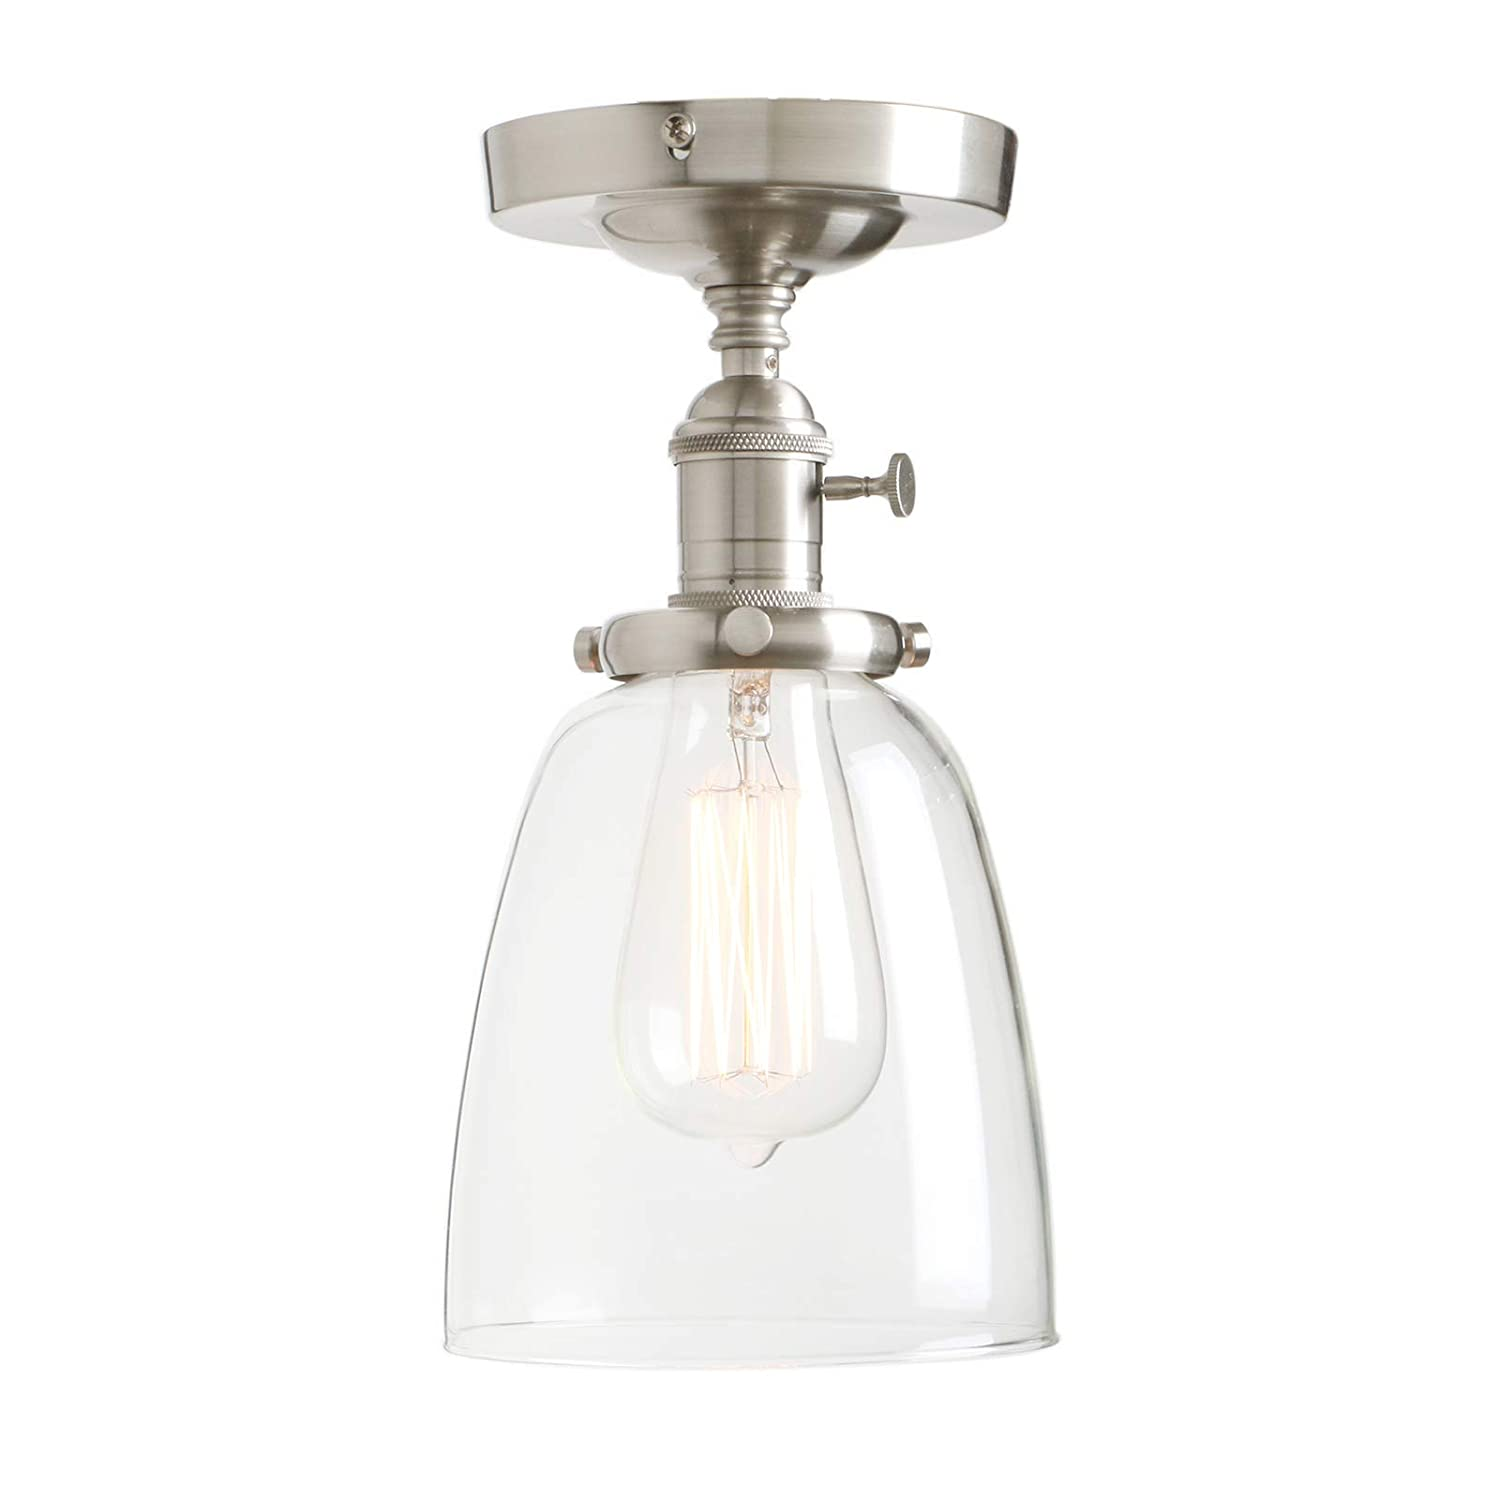 Permo Vintage Industrial Semi Flush Mount Ceiling Light Fixture Pendant Lighting with Oval Cone Clear Glass Shade (Brushed)